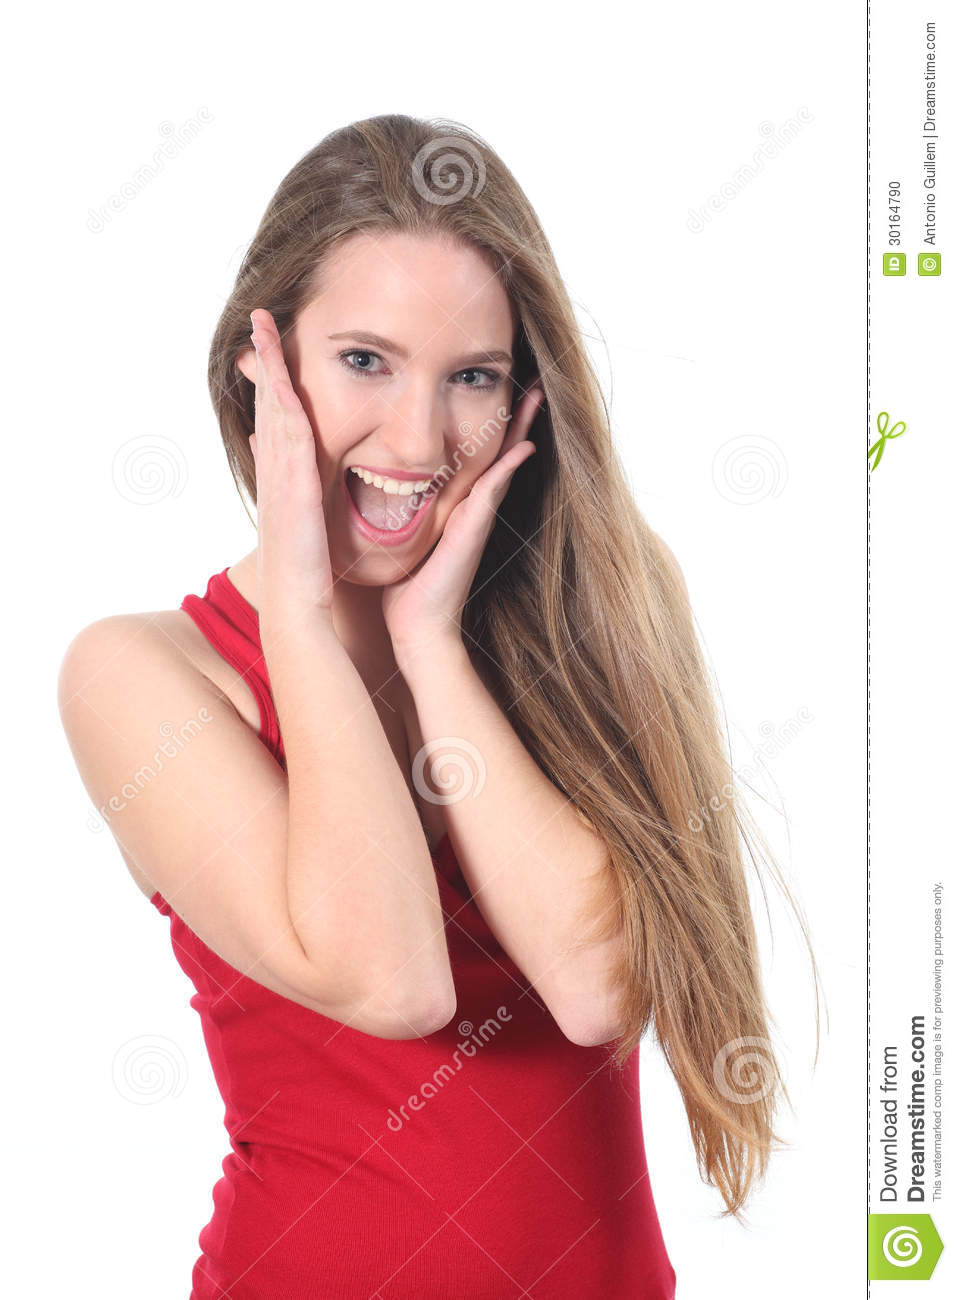 Happy expression of a woman with her hands on the face